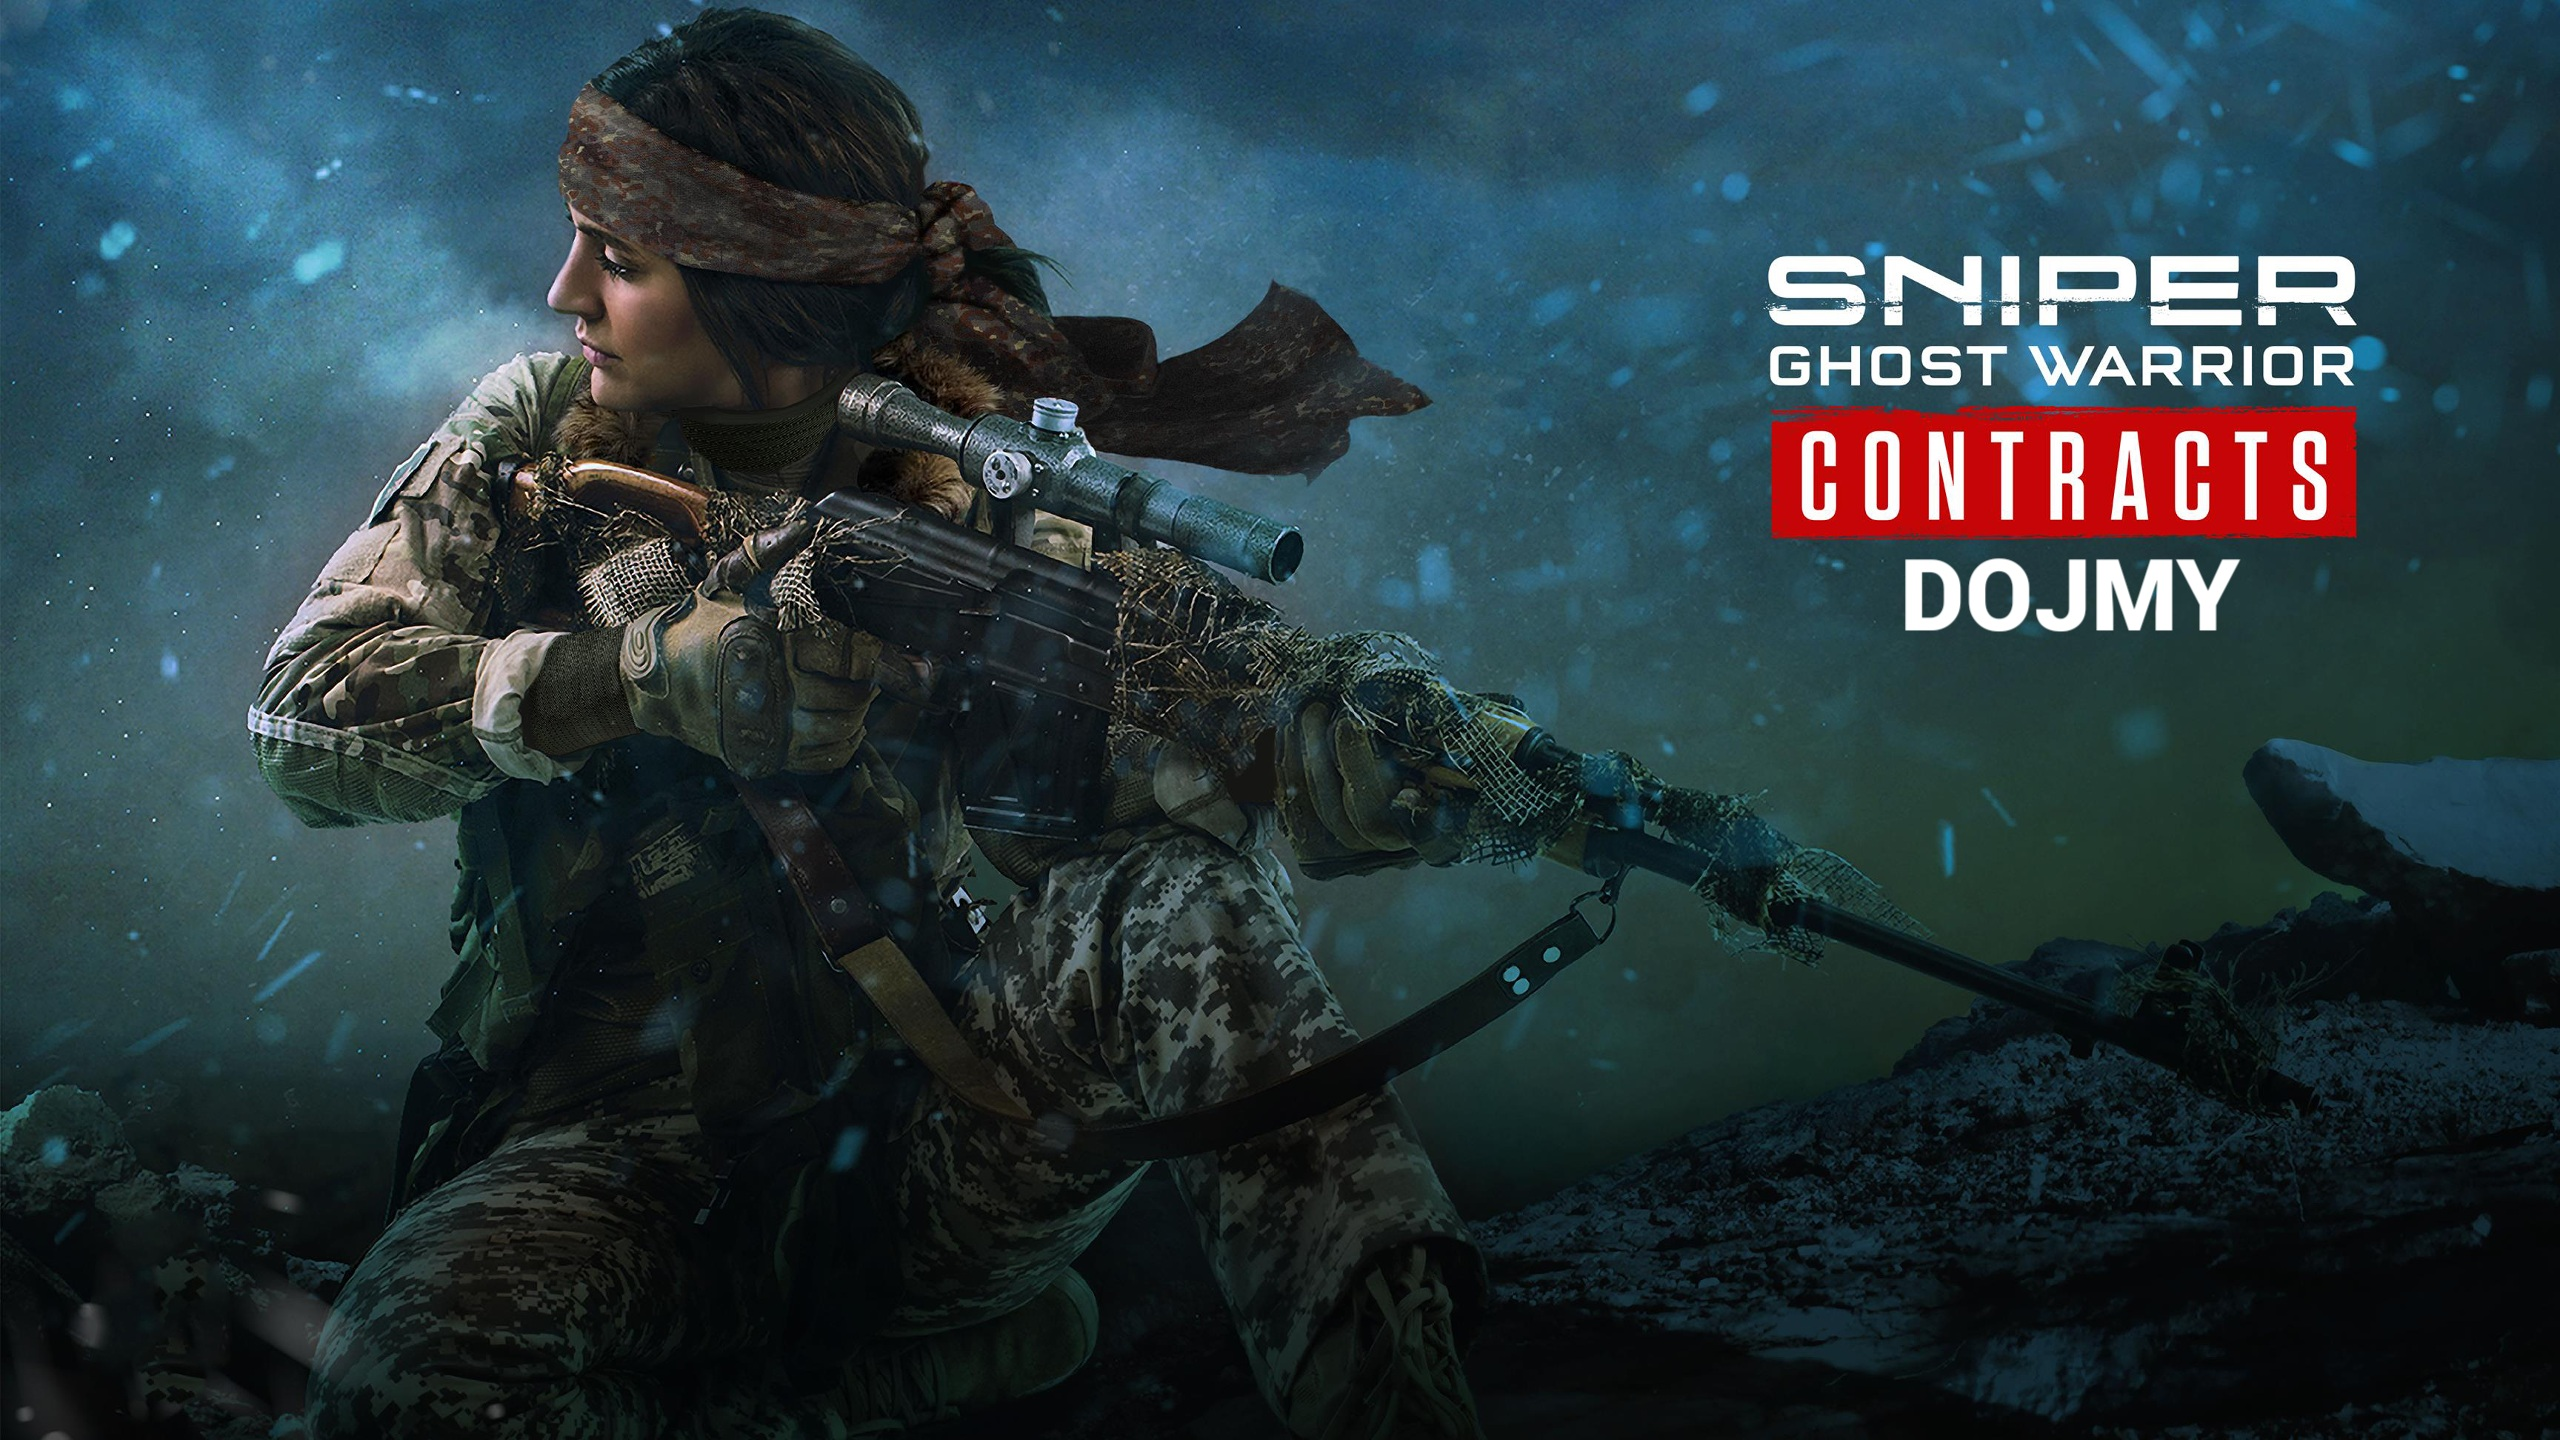 Sniper Ghost Warrior Contracts – Dojmy